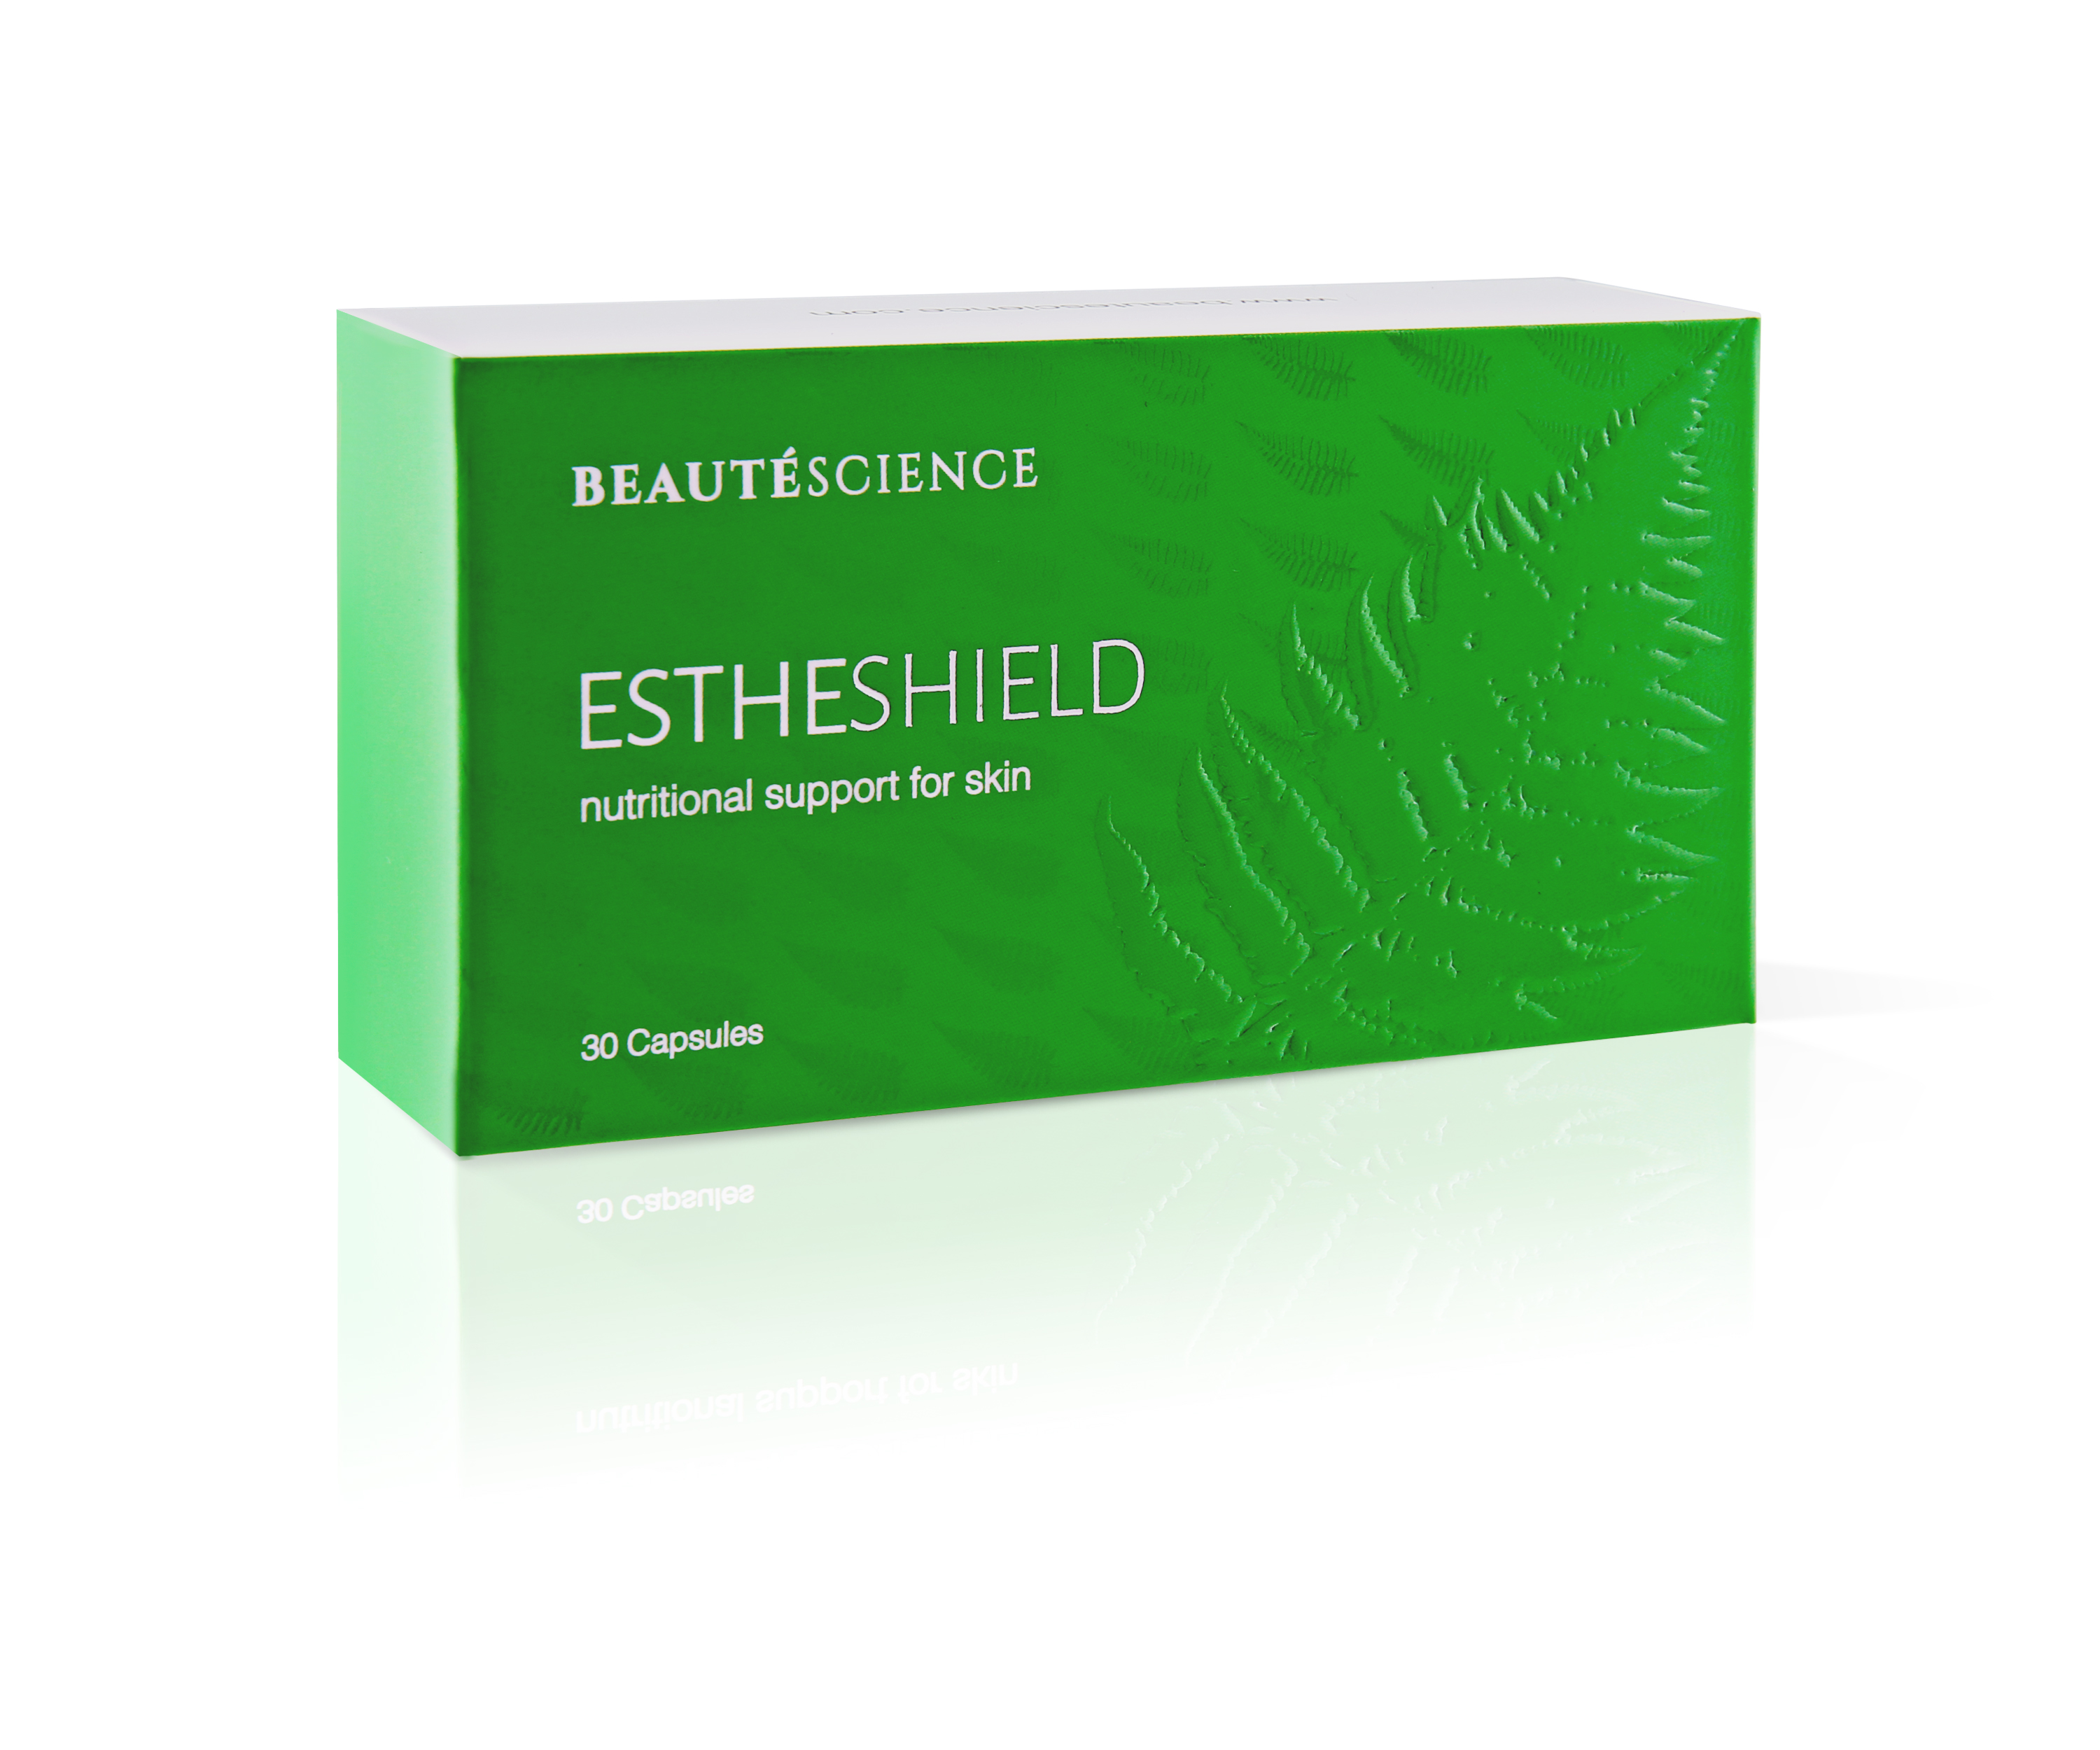 Estheshield Box